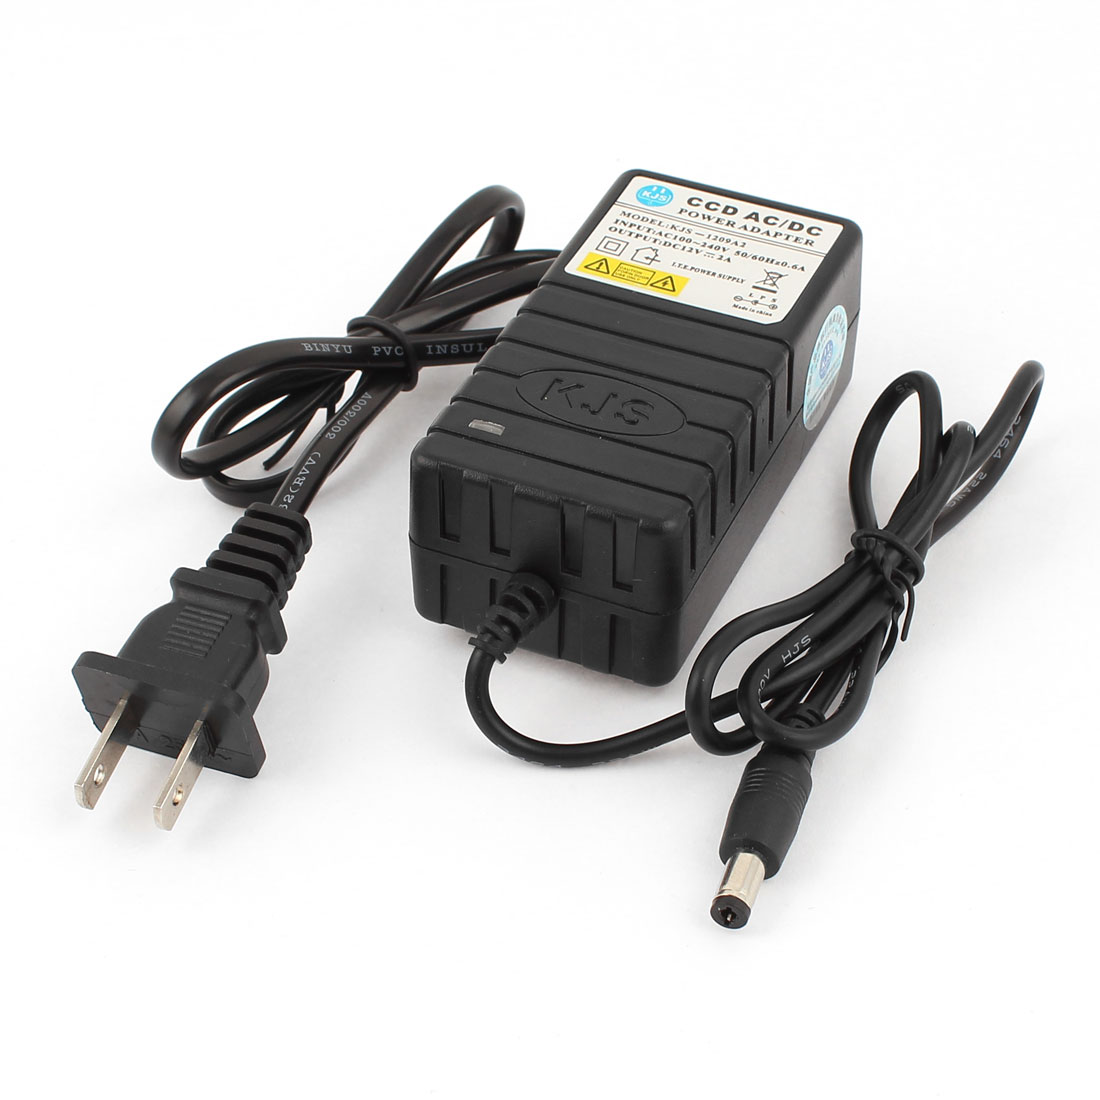 US Plug AC 100-240V to DC 12V 2A 5.5x2.5mm Power Supply Adapter for CCTV Camera